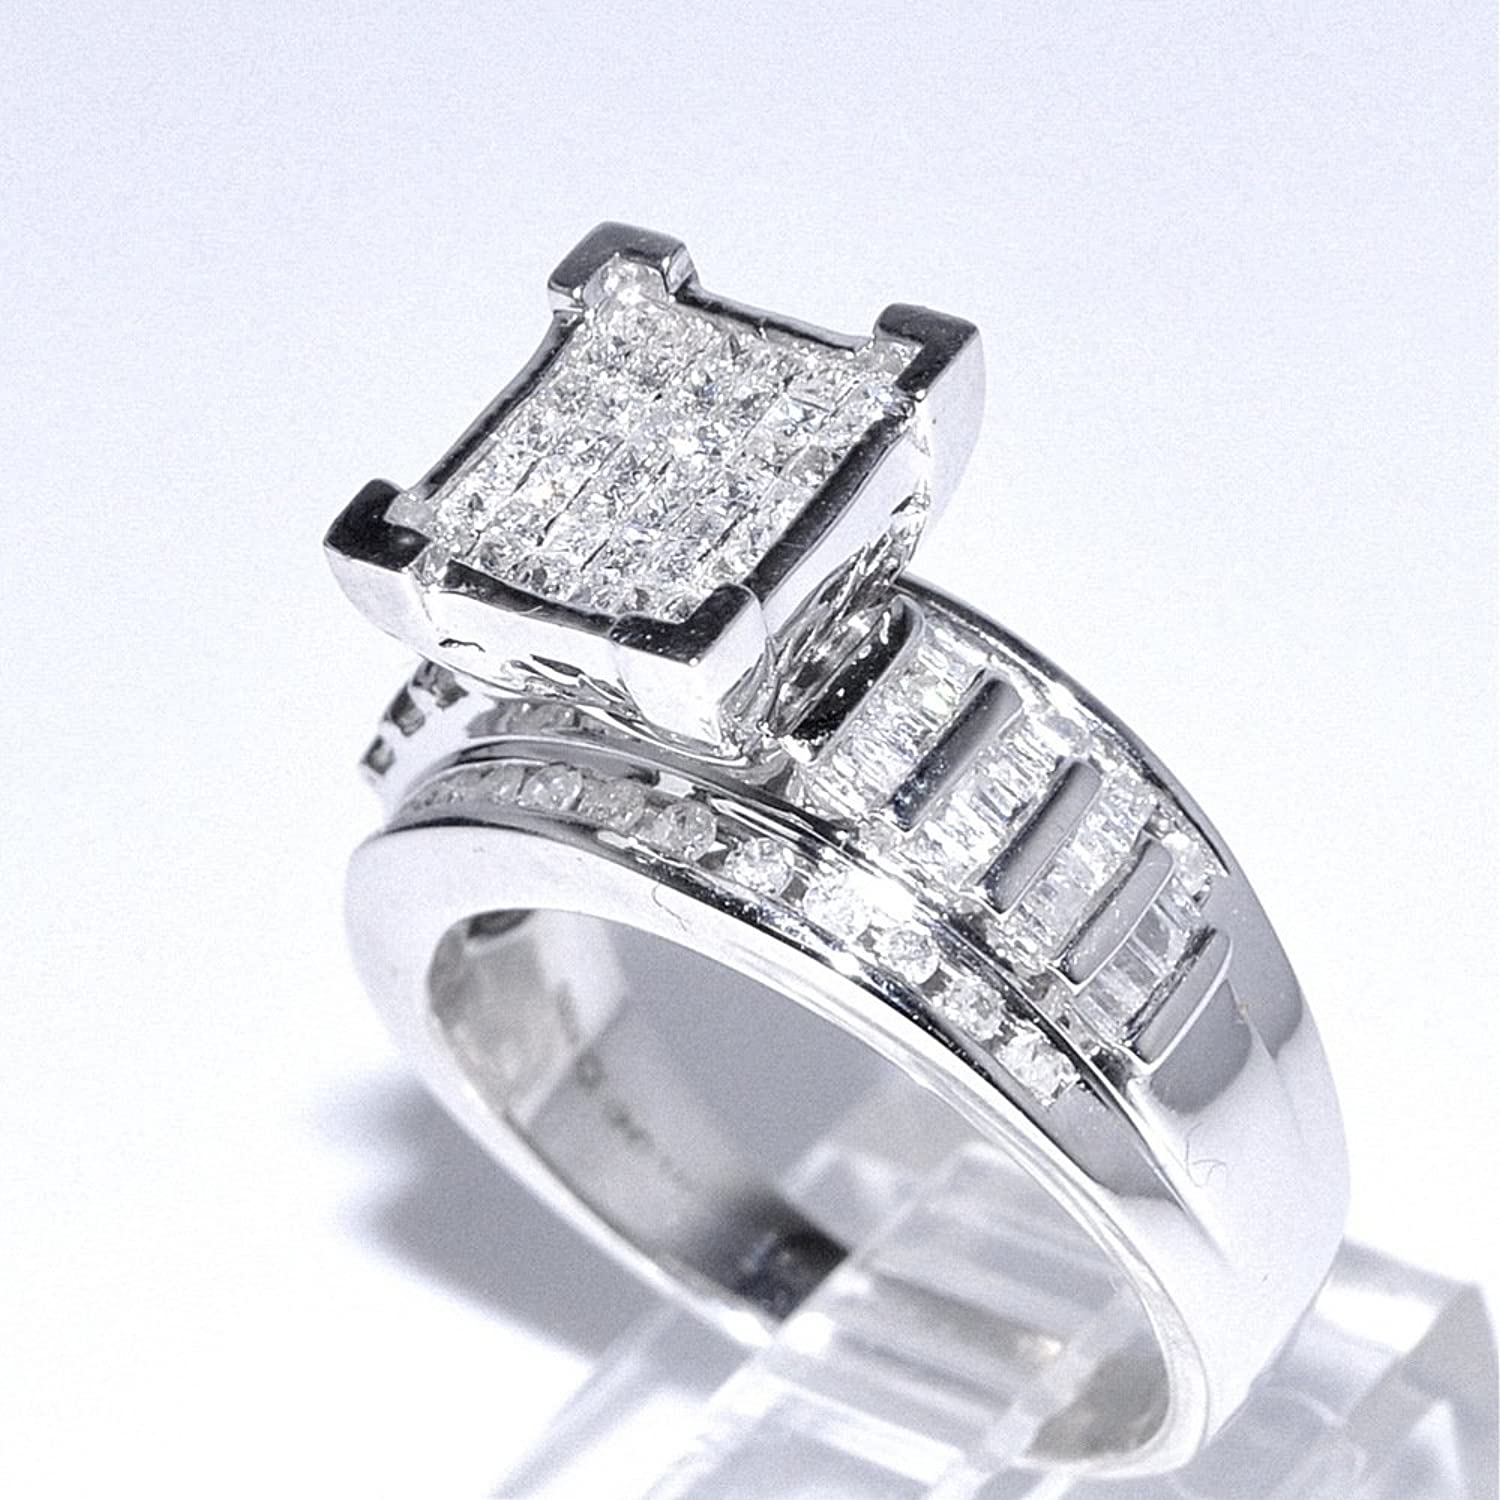 inset is princess diamond carat ring pave white loading engagement gold cut jewellery h itm rings image